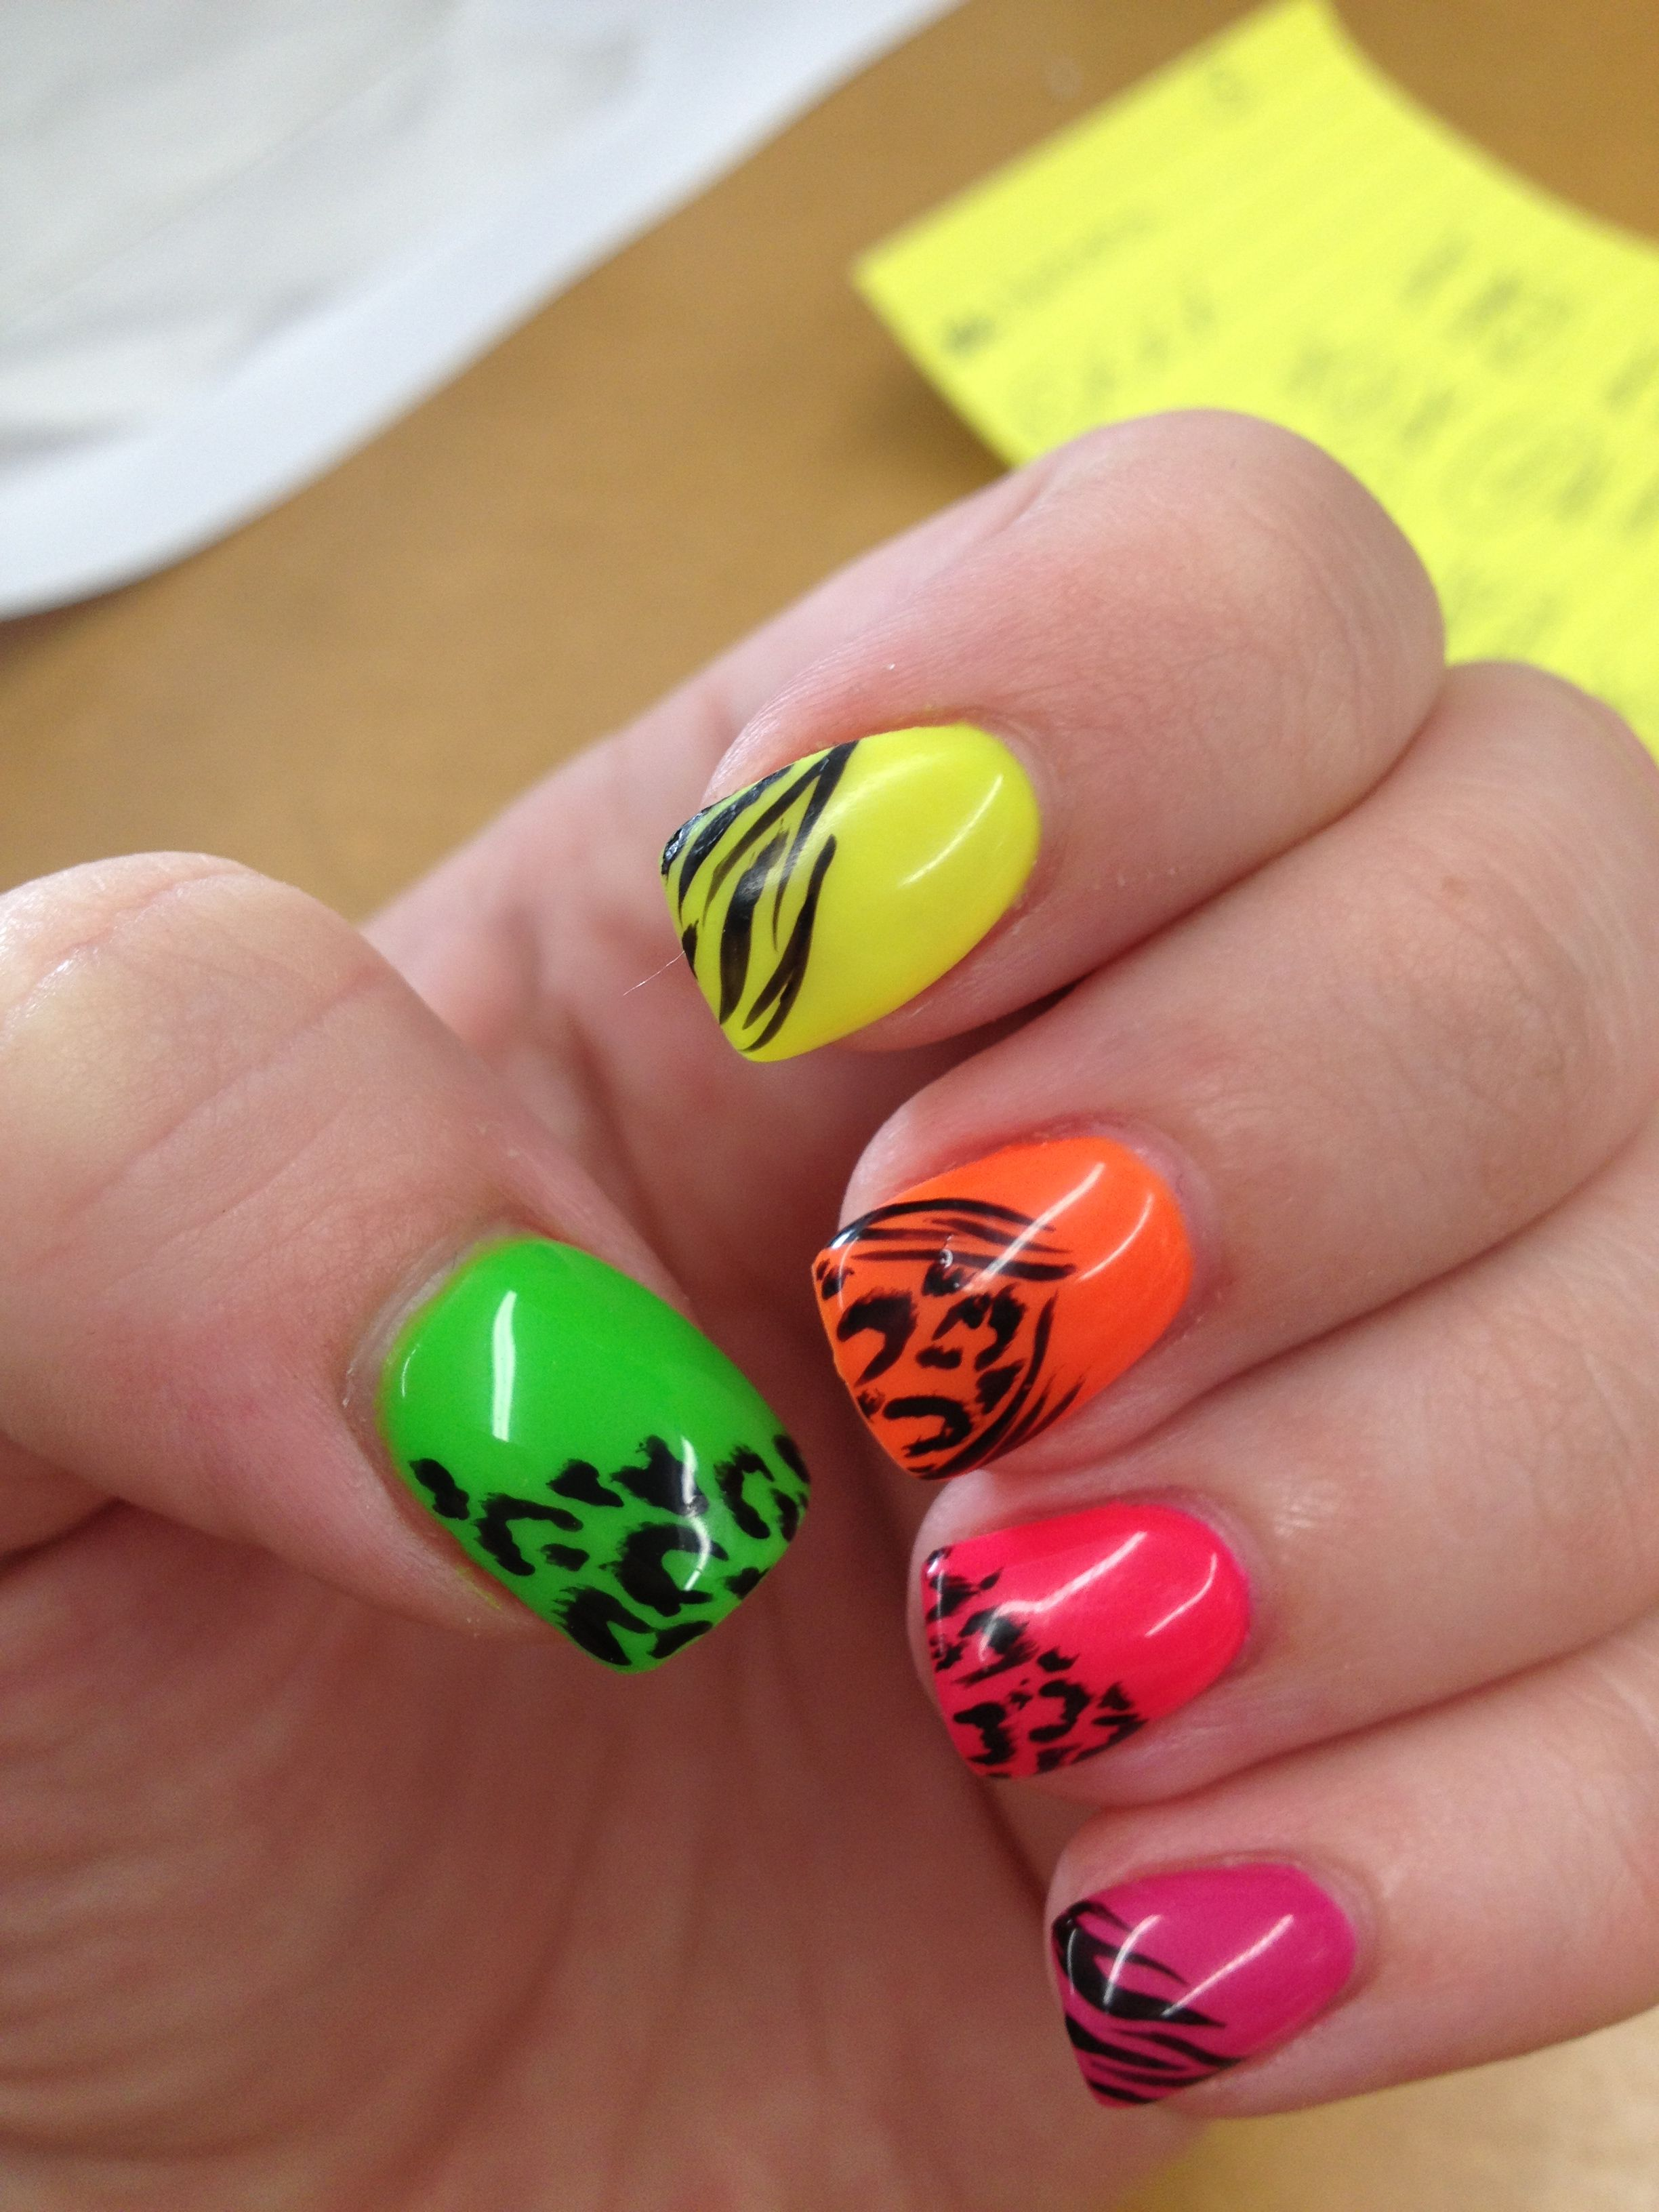 Pin By Lindsay Dyck On My Nails! ;)